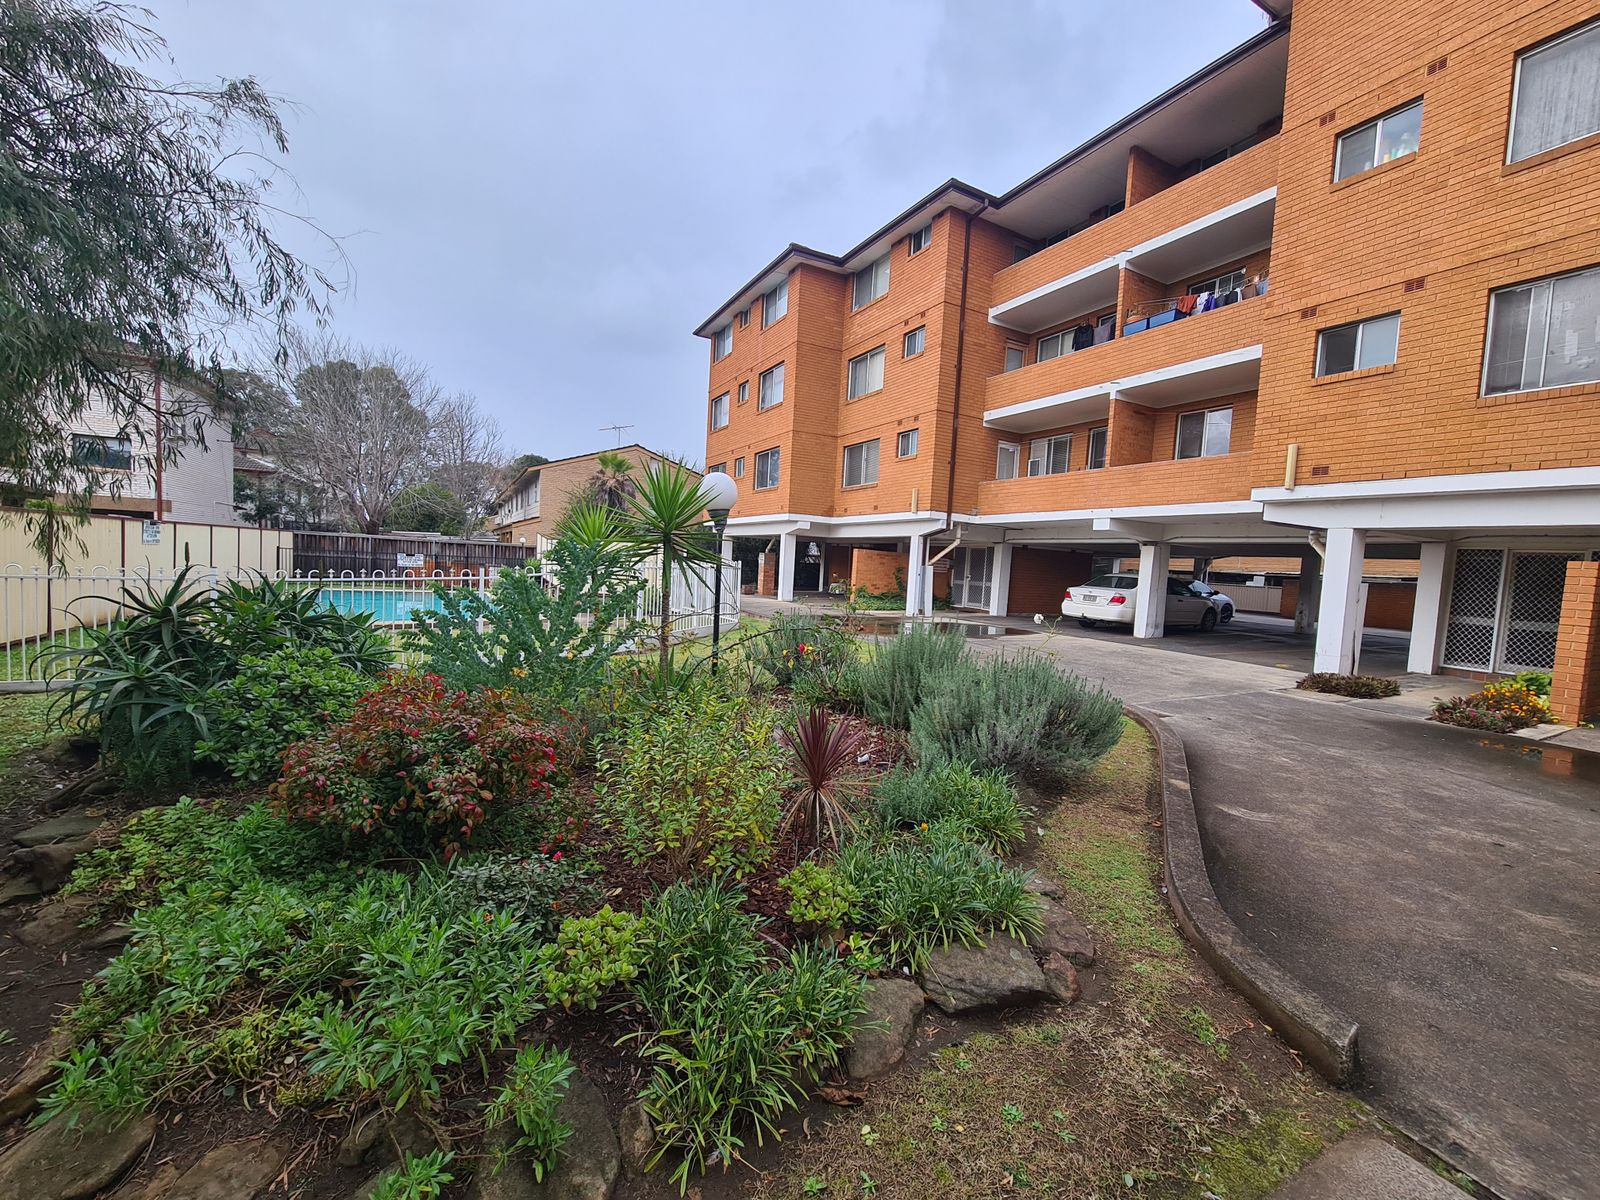 13/10 Clifford Avenue, Canley Vale, NSW 2166